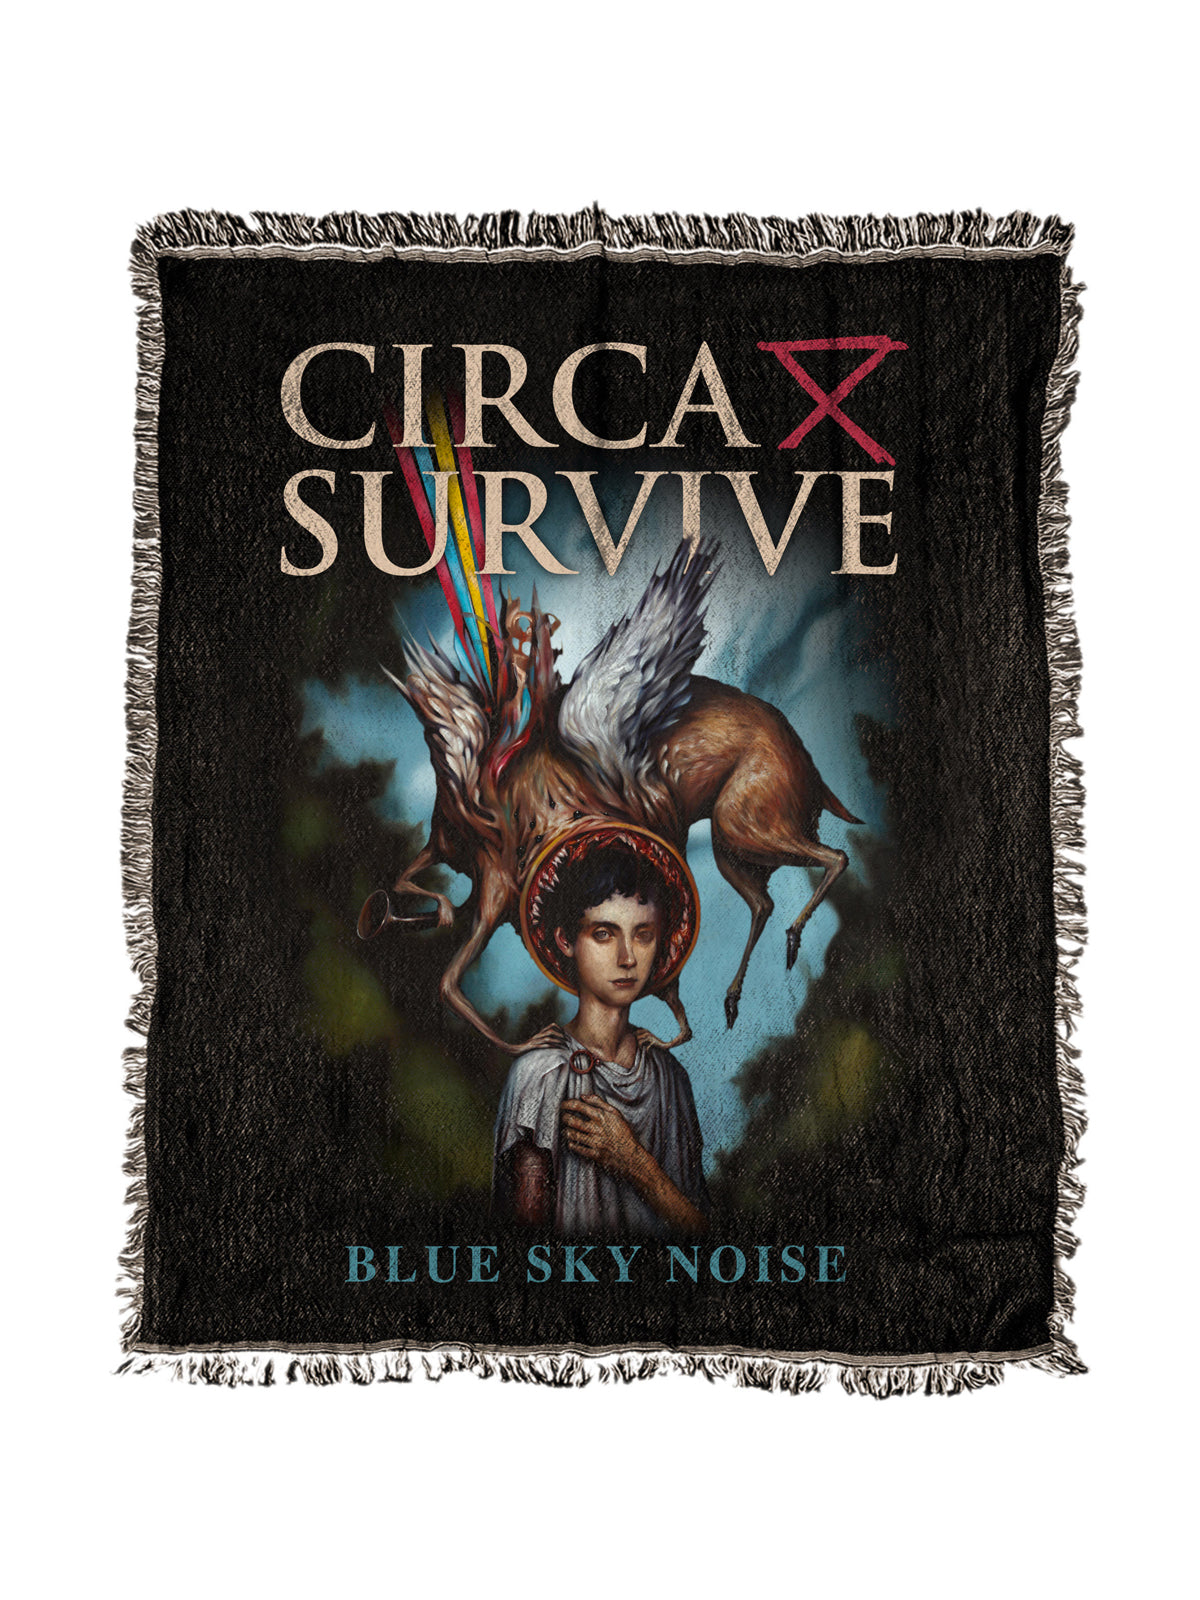 Circa Survive - Blue Sky Noise 50x60 Woven Blanket - SHIPS APRIL 23 - Merch Limited